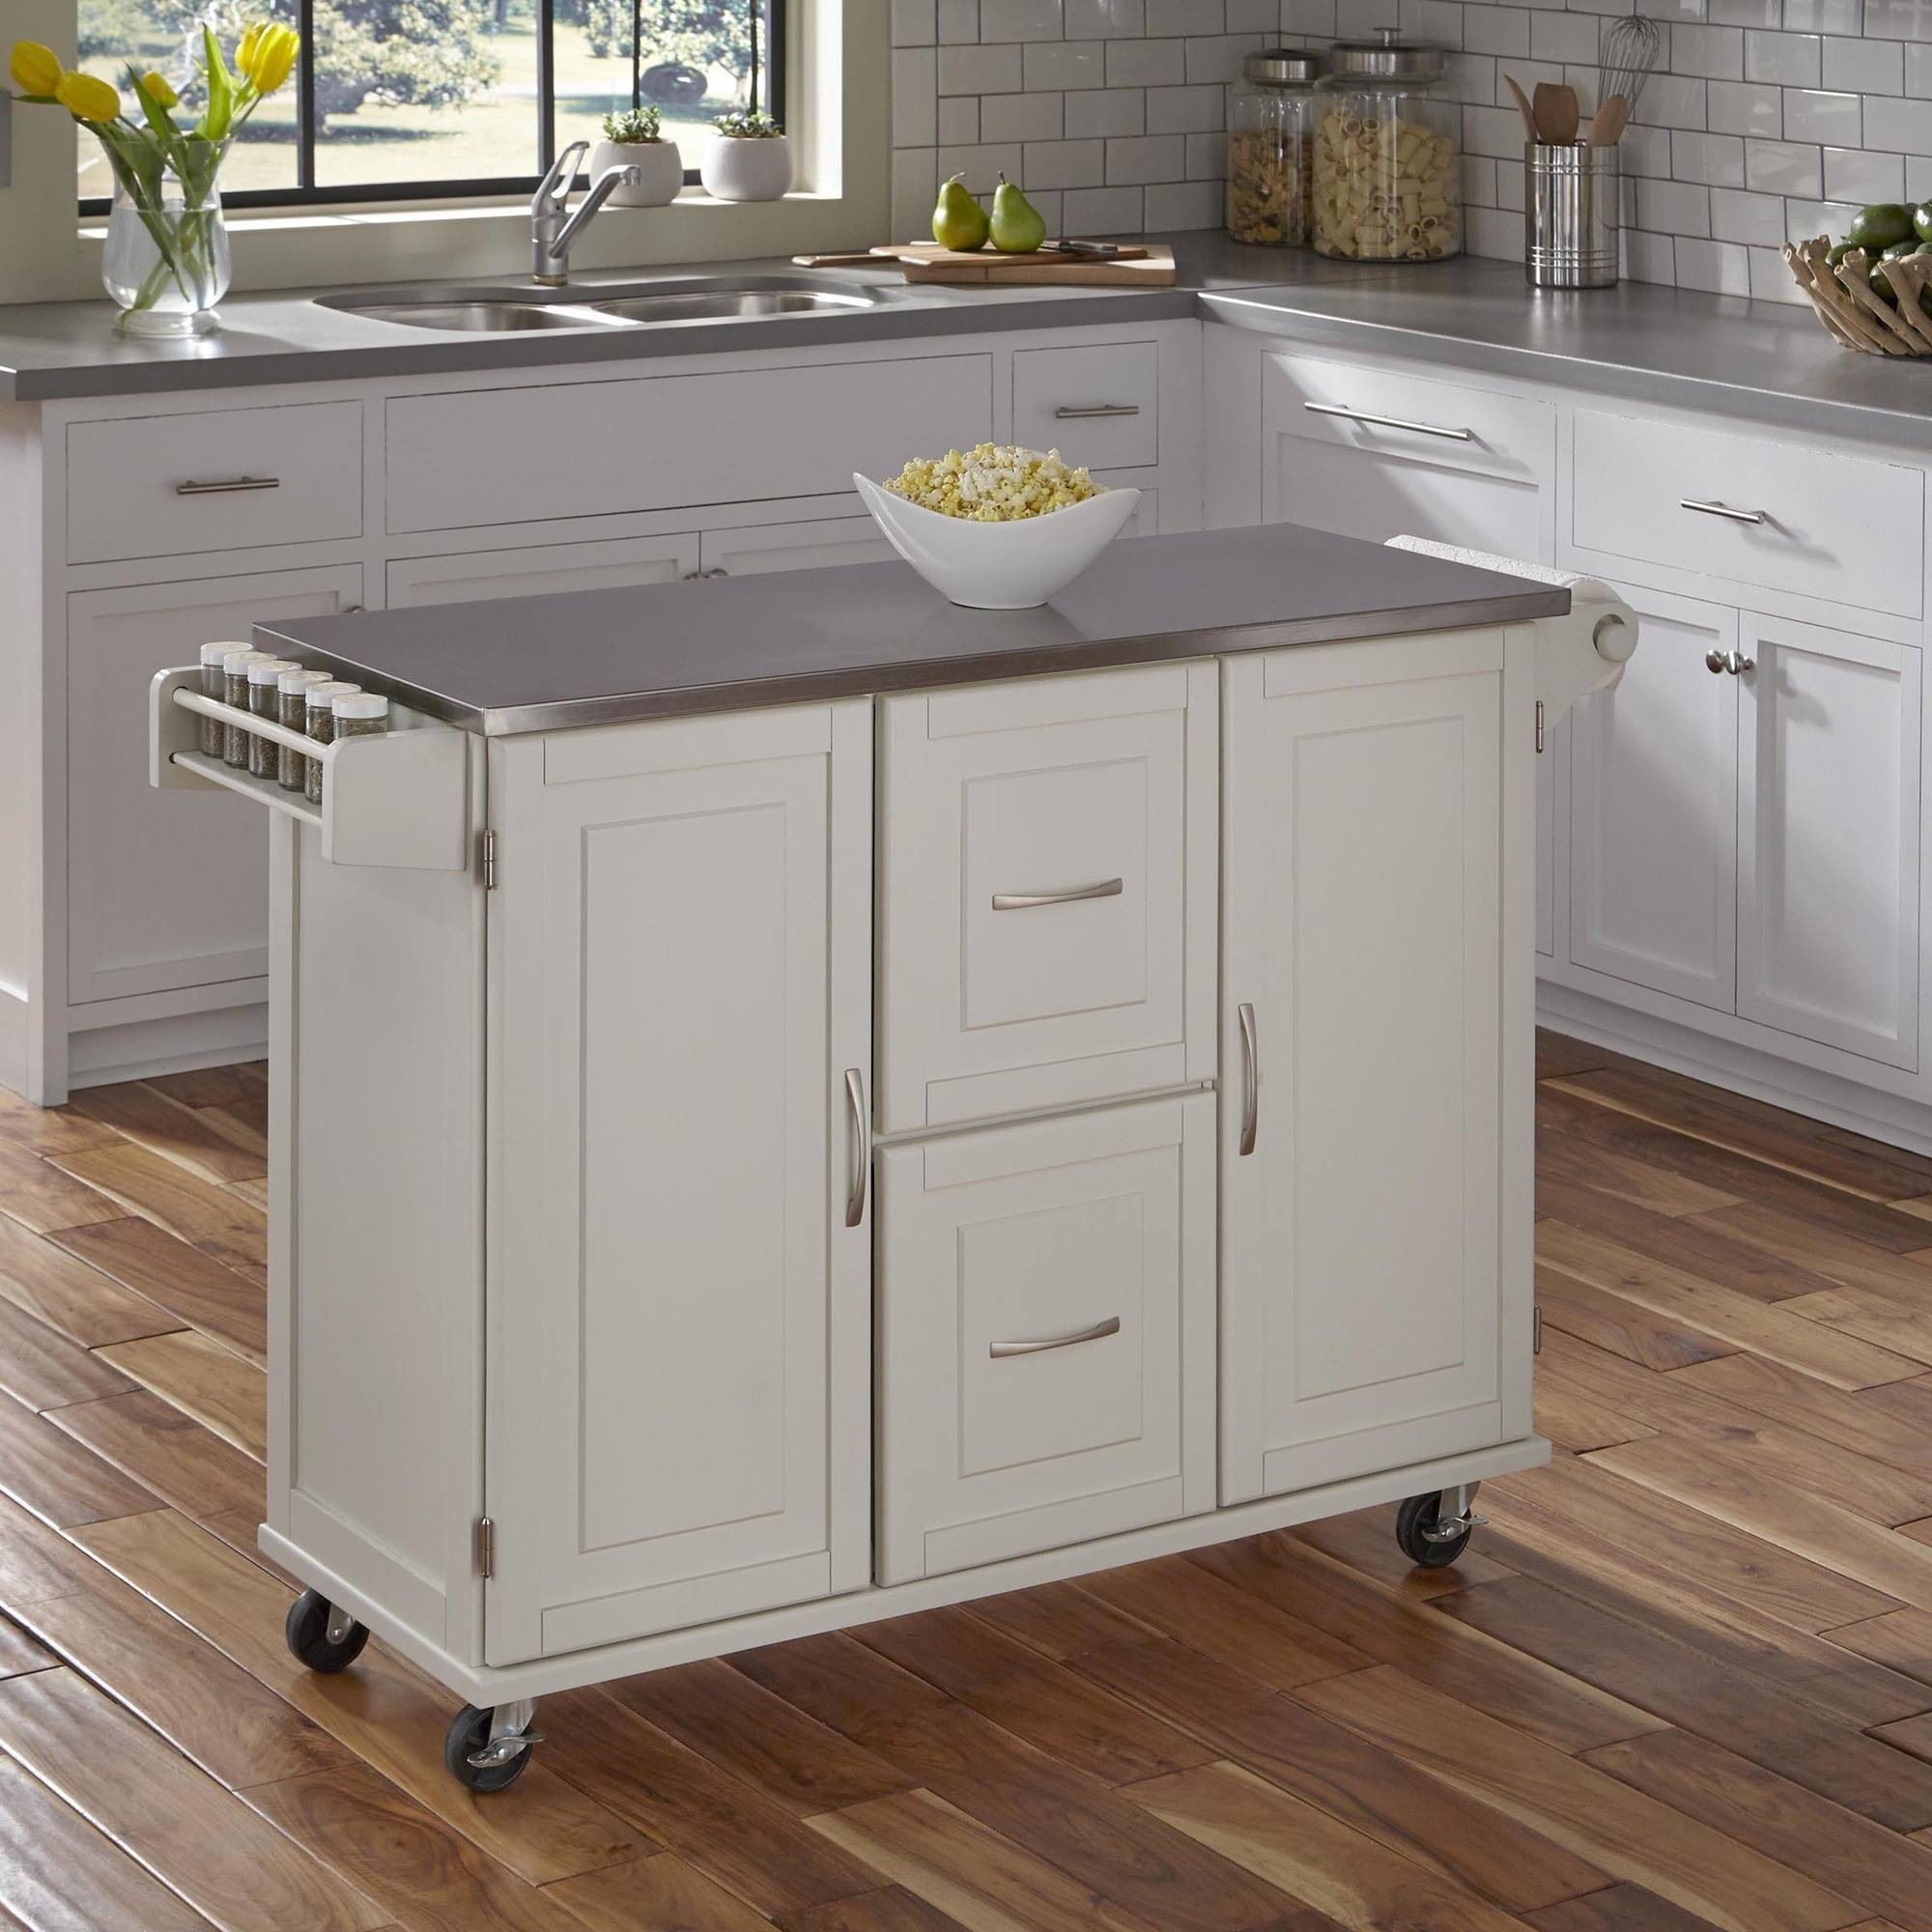 patriot kitchen cart, white - walmart